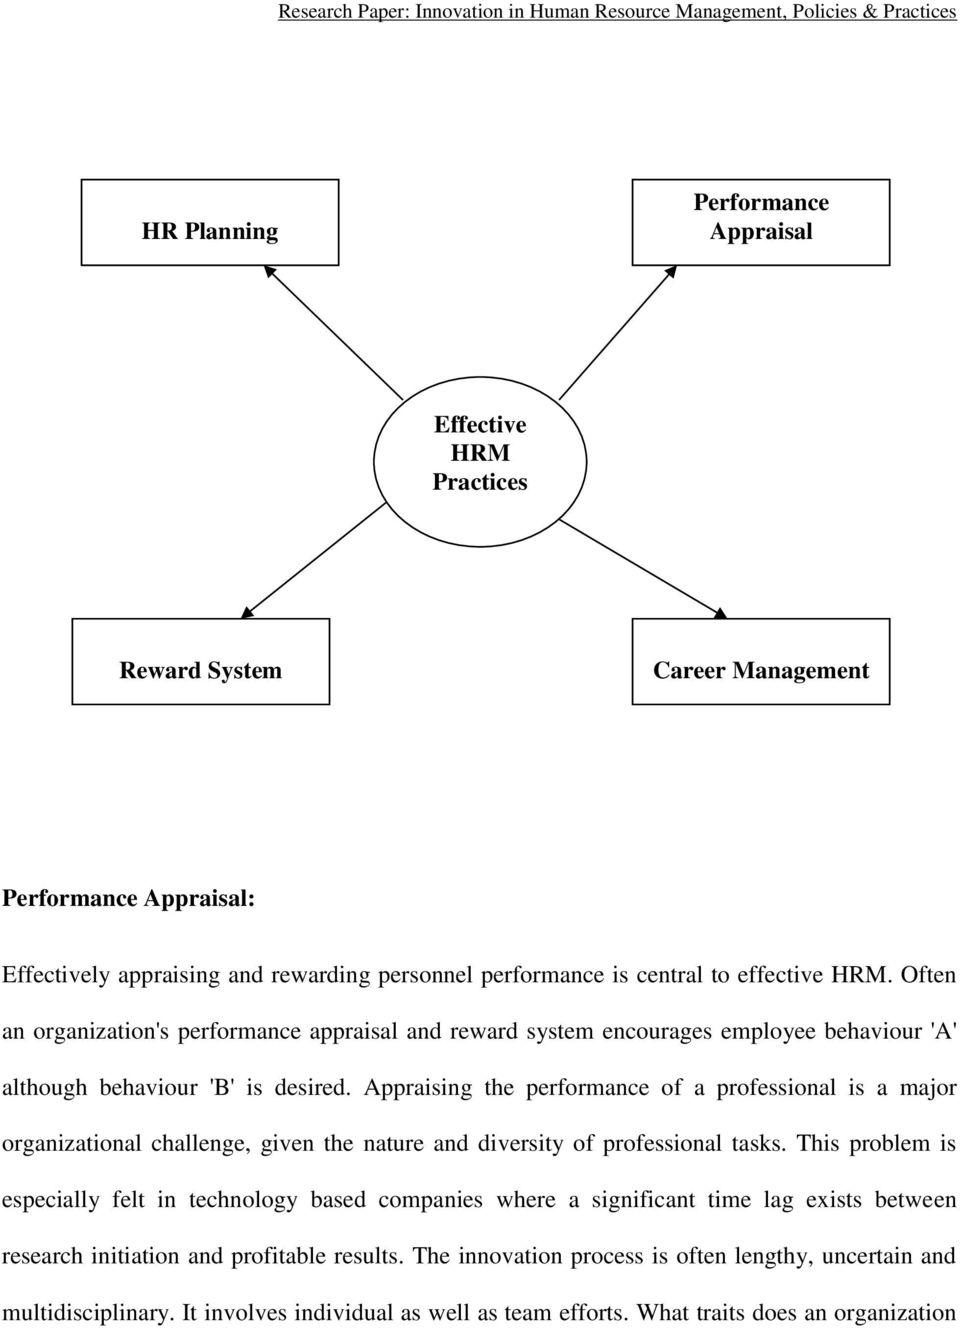 Appraising the performance of a professional is a major organizational challenge, given the nature and diversity of professional tasks.